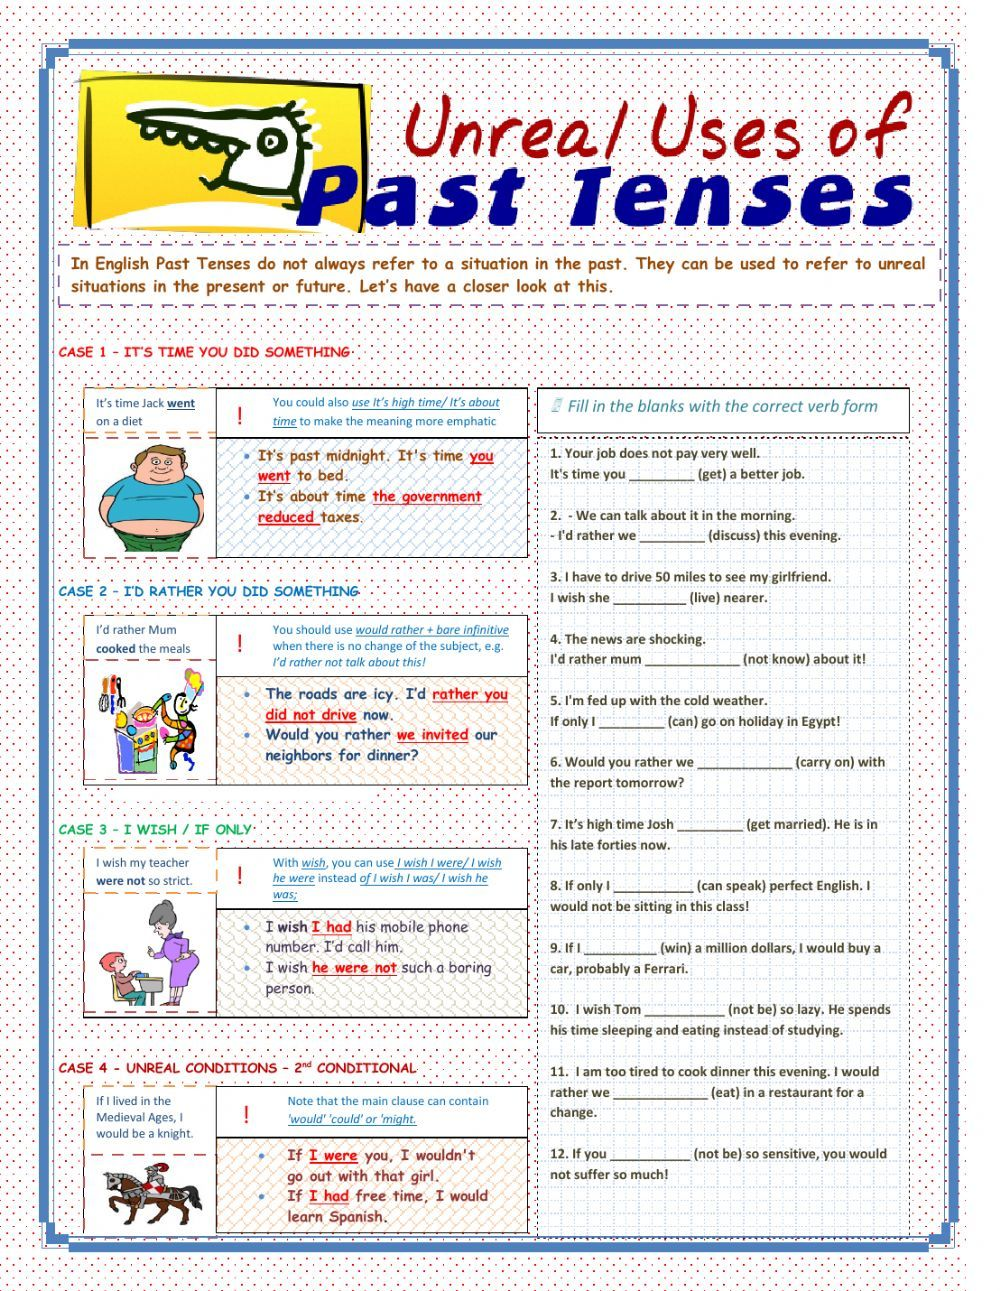 Past Tenses Interactive And Downloadable Worksheet You Can Do The Exercises Online Or Download The Work Past Tense English Past Tense Teaching English Grammar